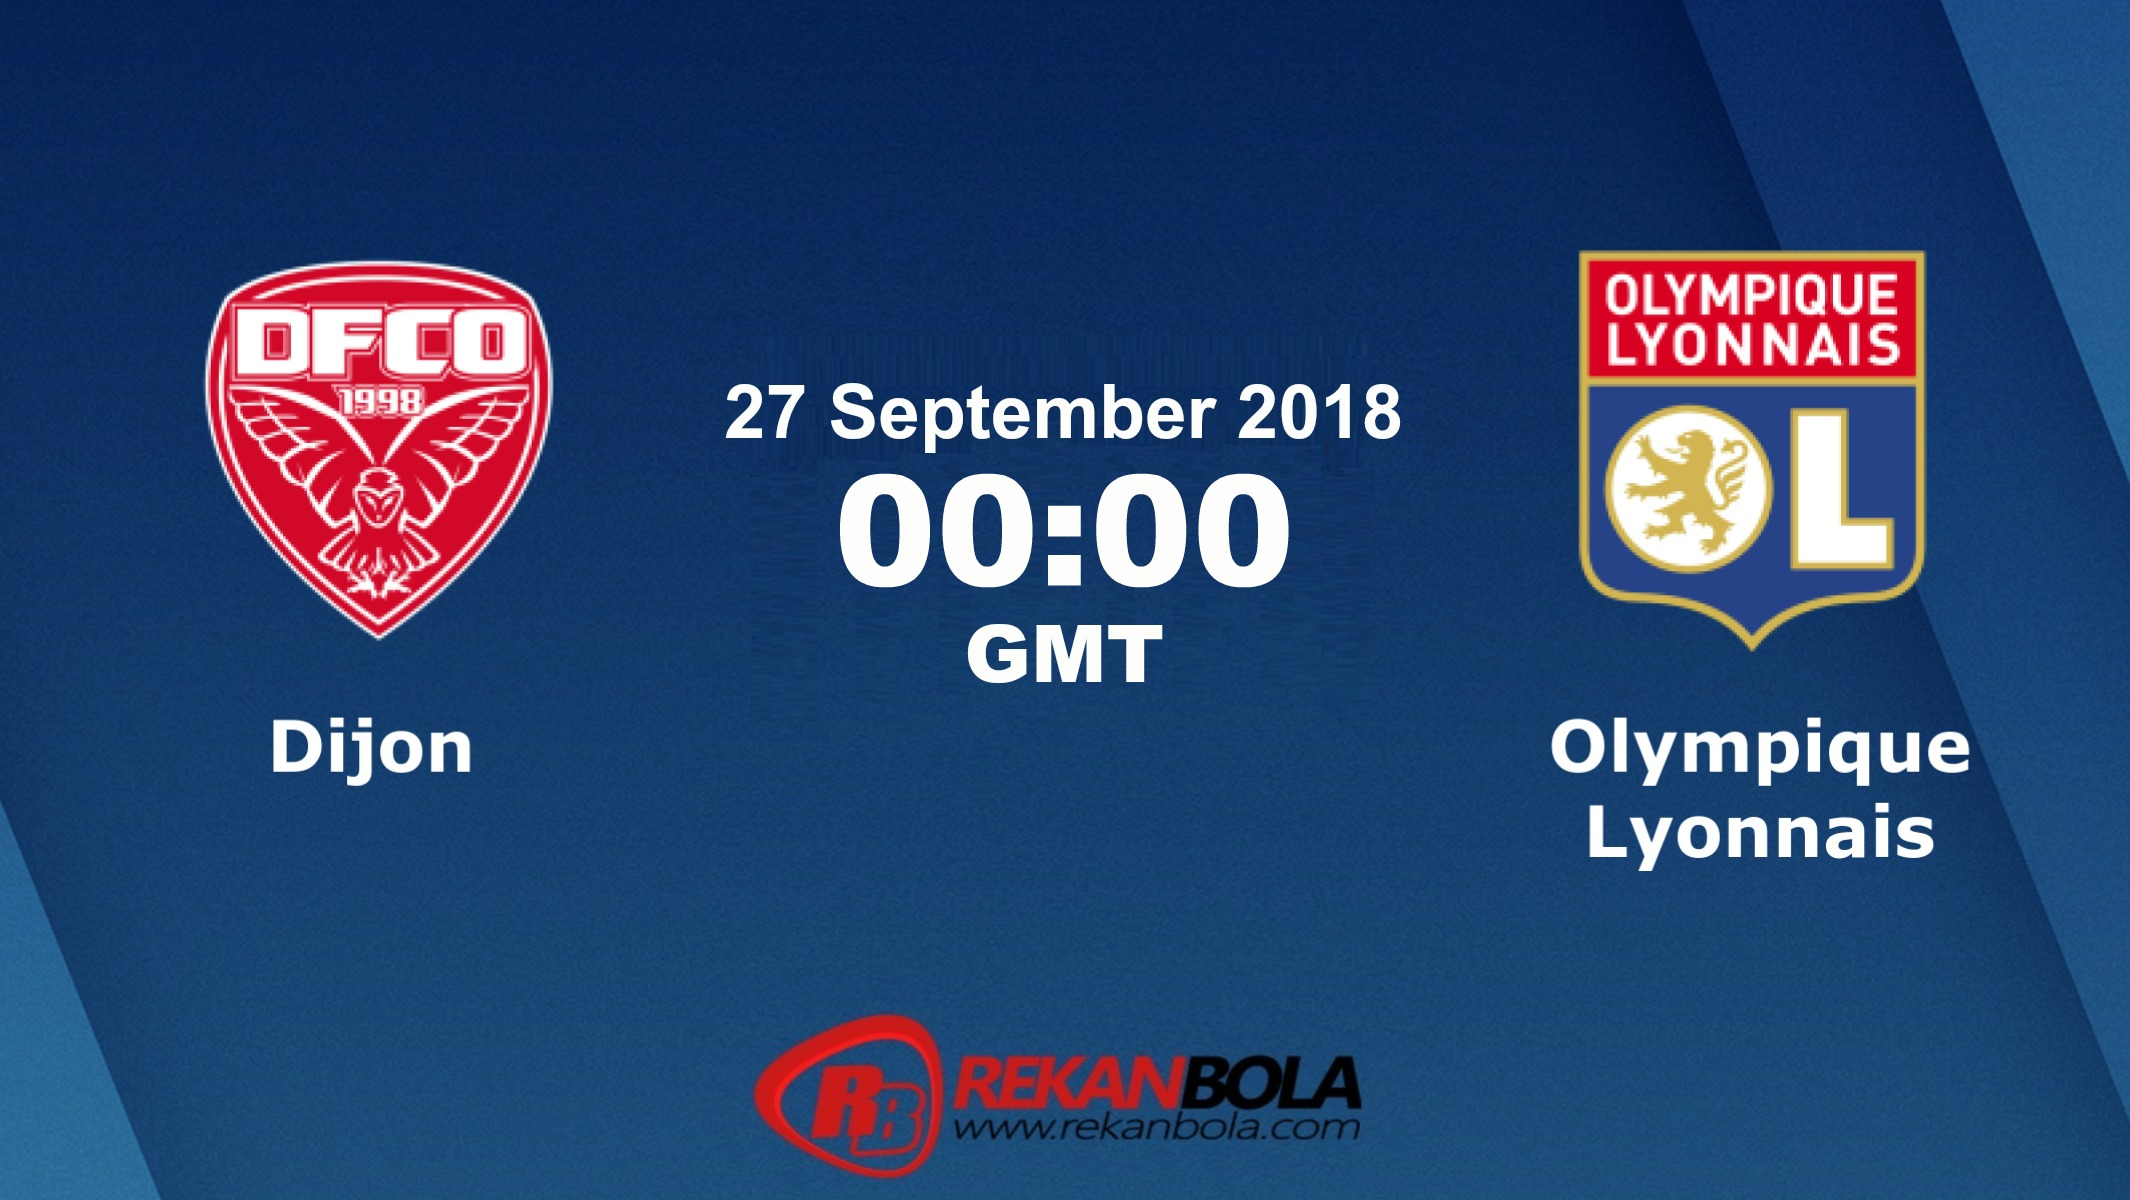 Nonton Siaran Live Streaming Dijon Vs Lyon 27 September 2018